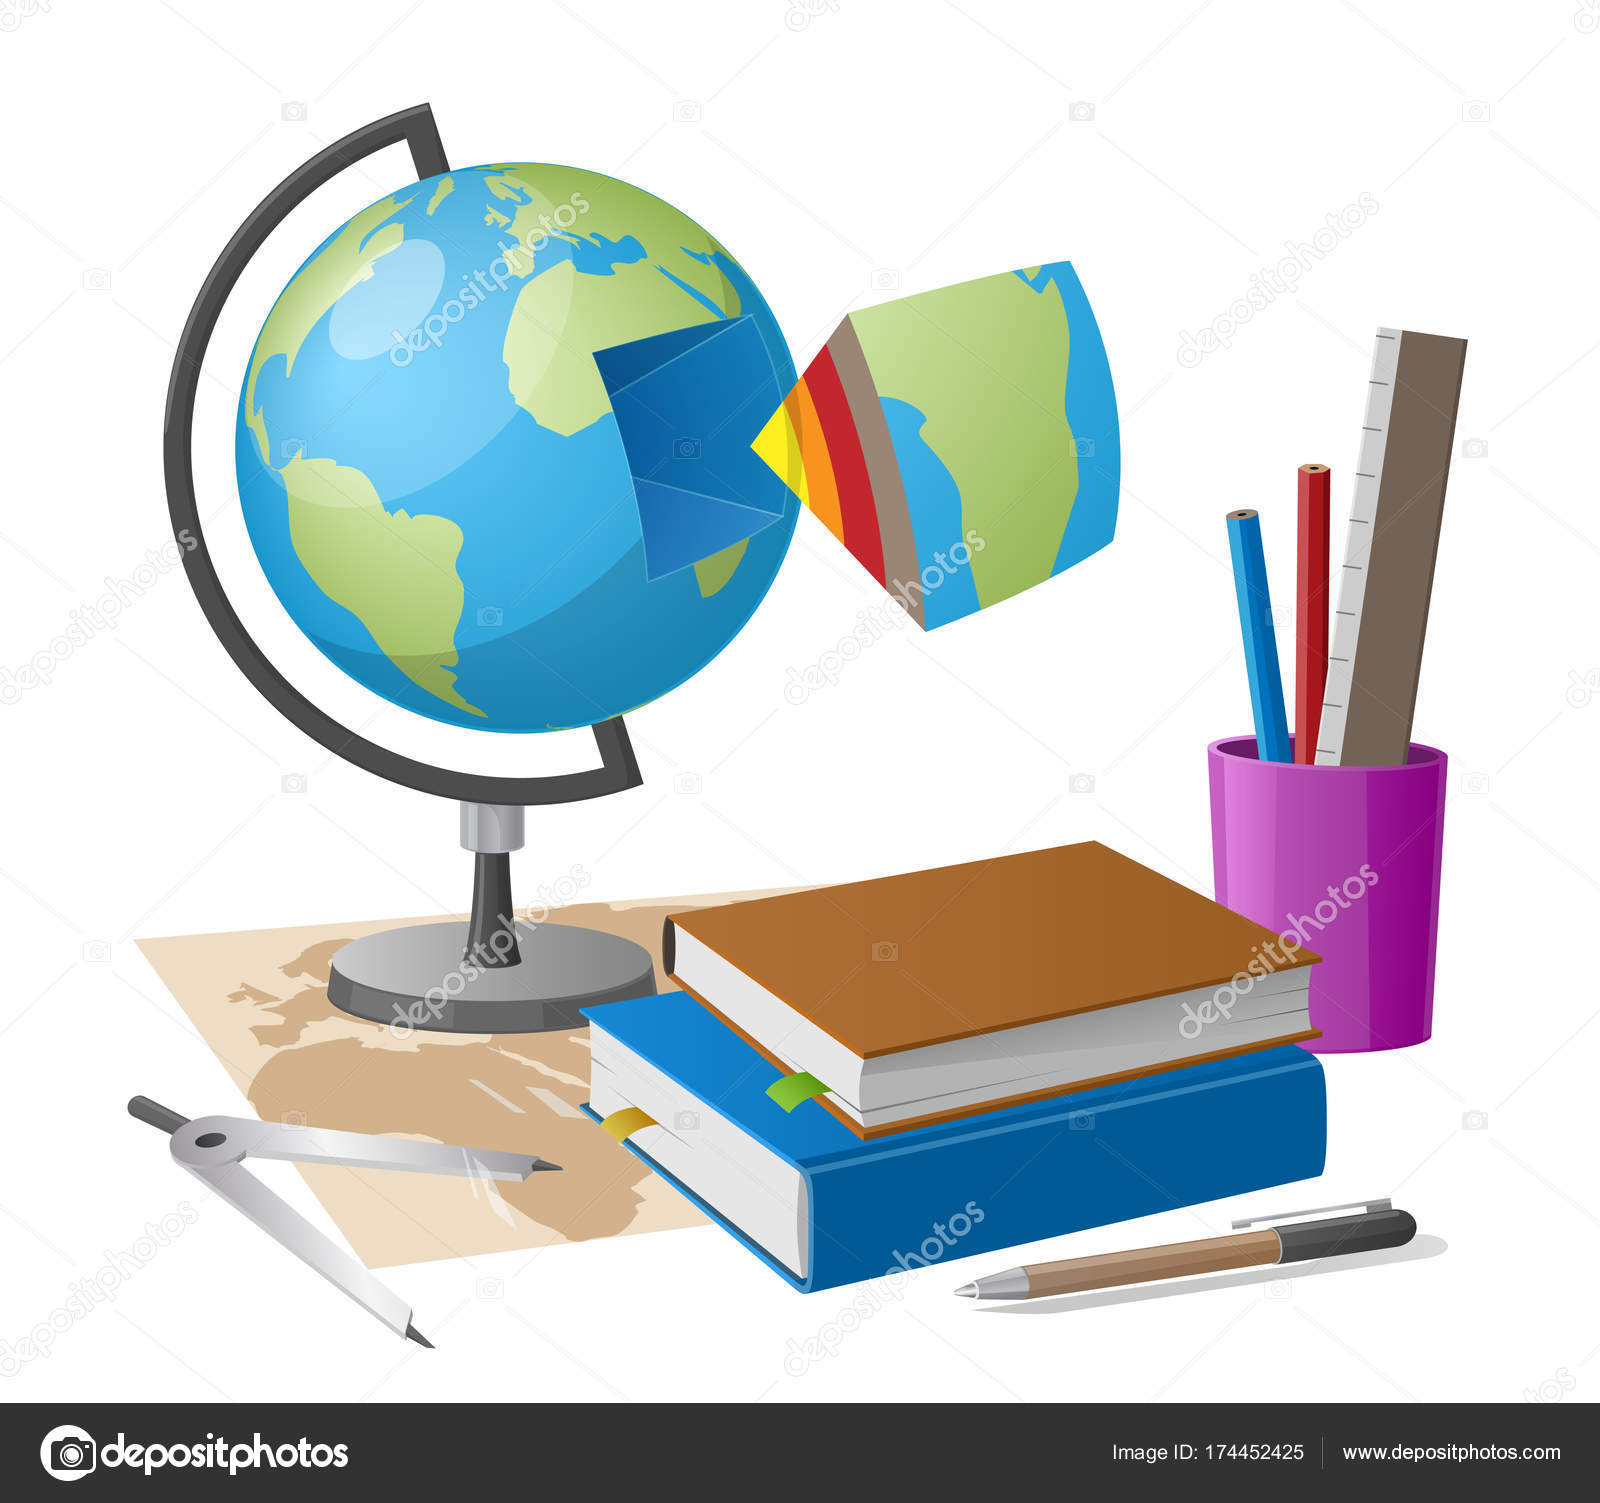 geography lesson related elements as cartoon style globe graphite pencil and compass on world map along with cup of stationary elements vector by robuart